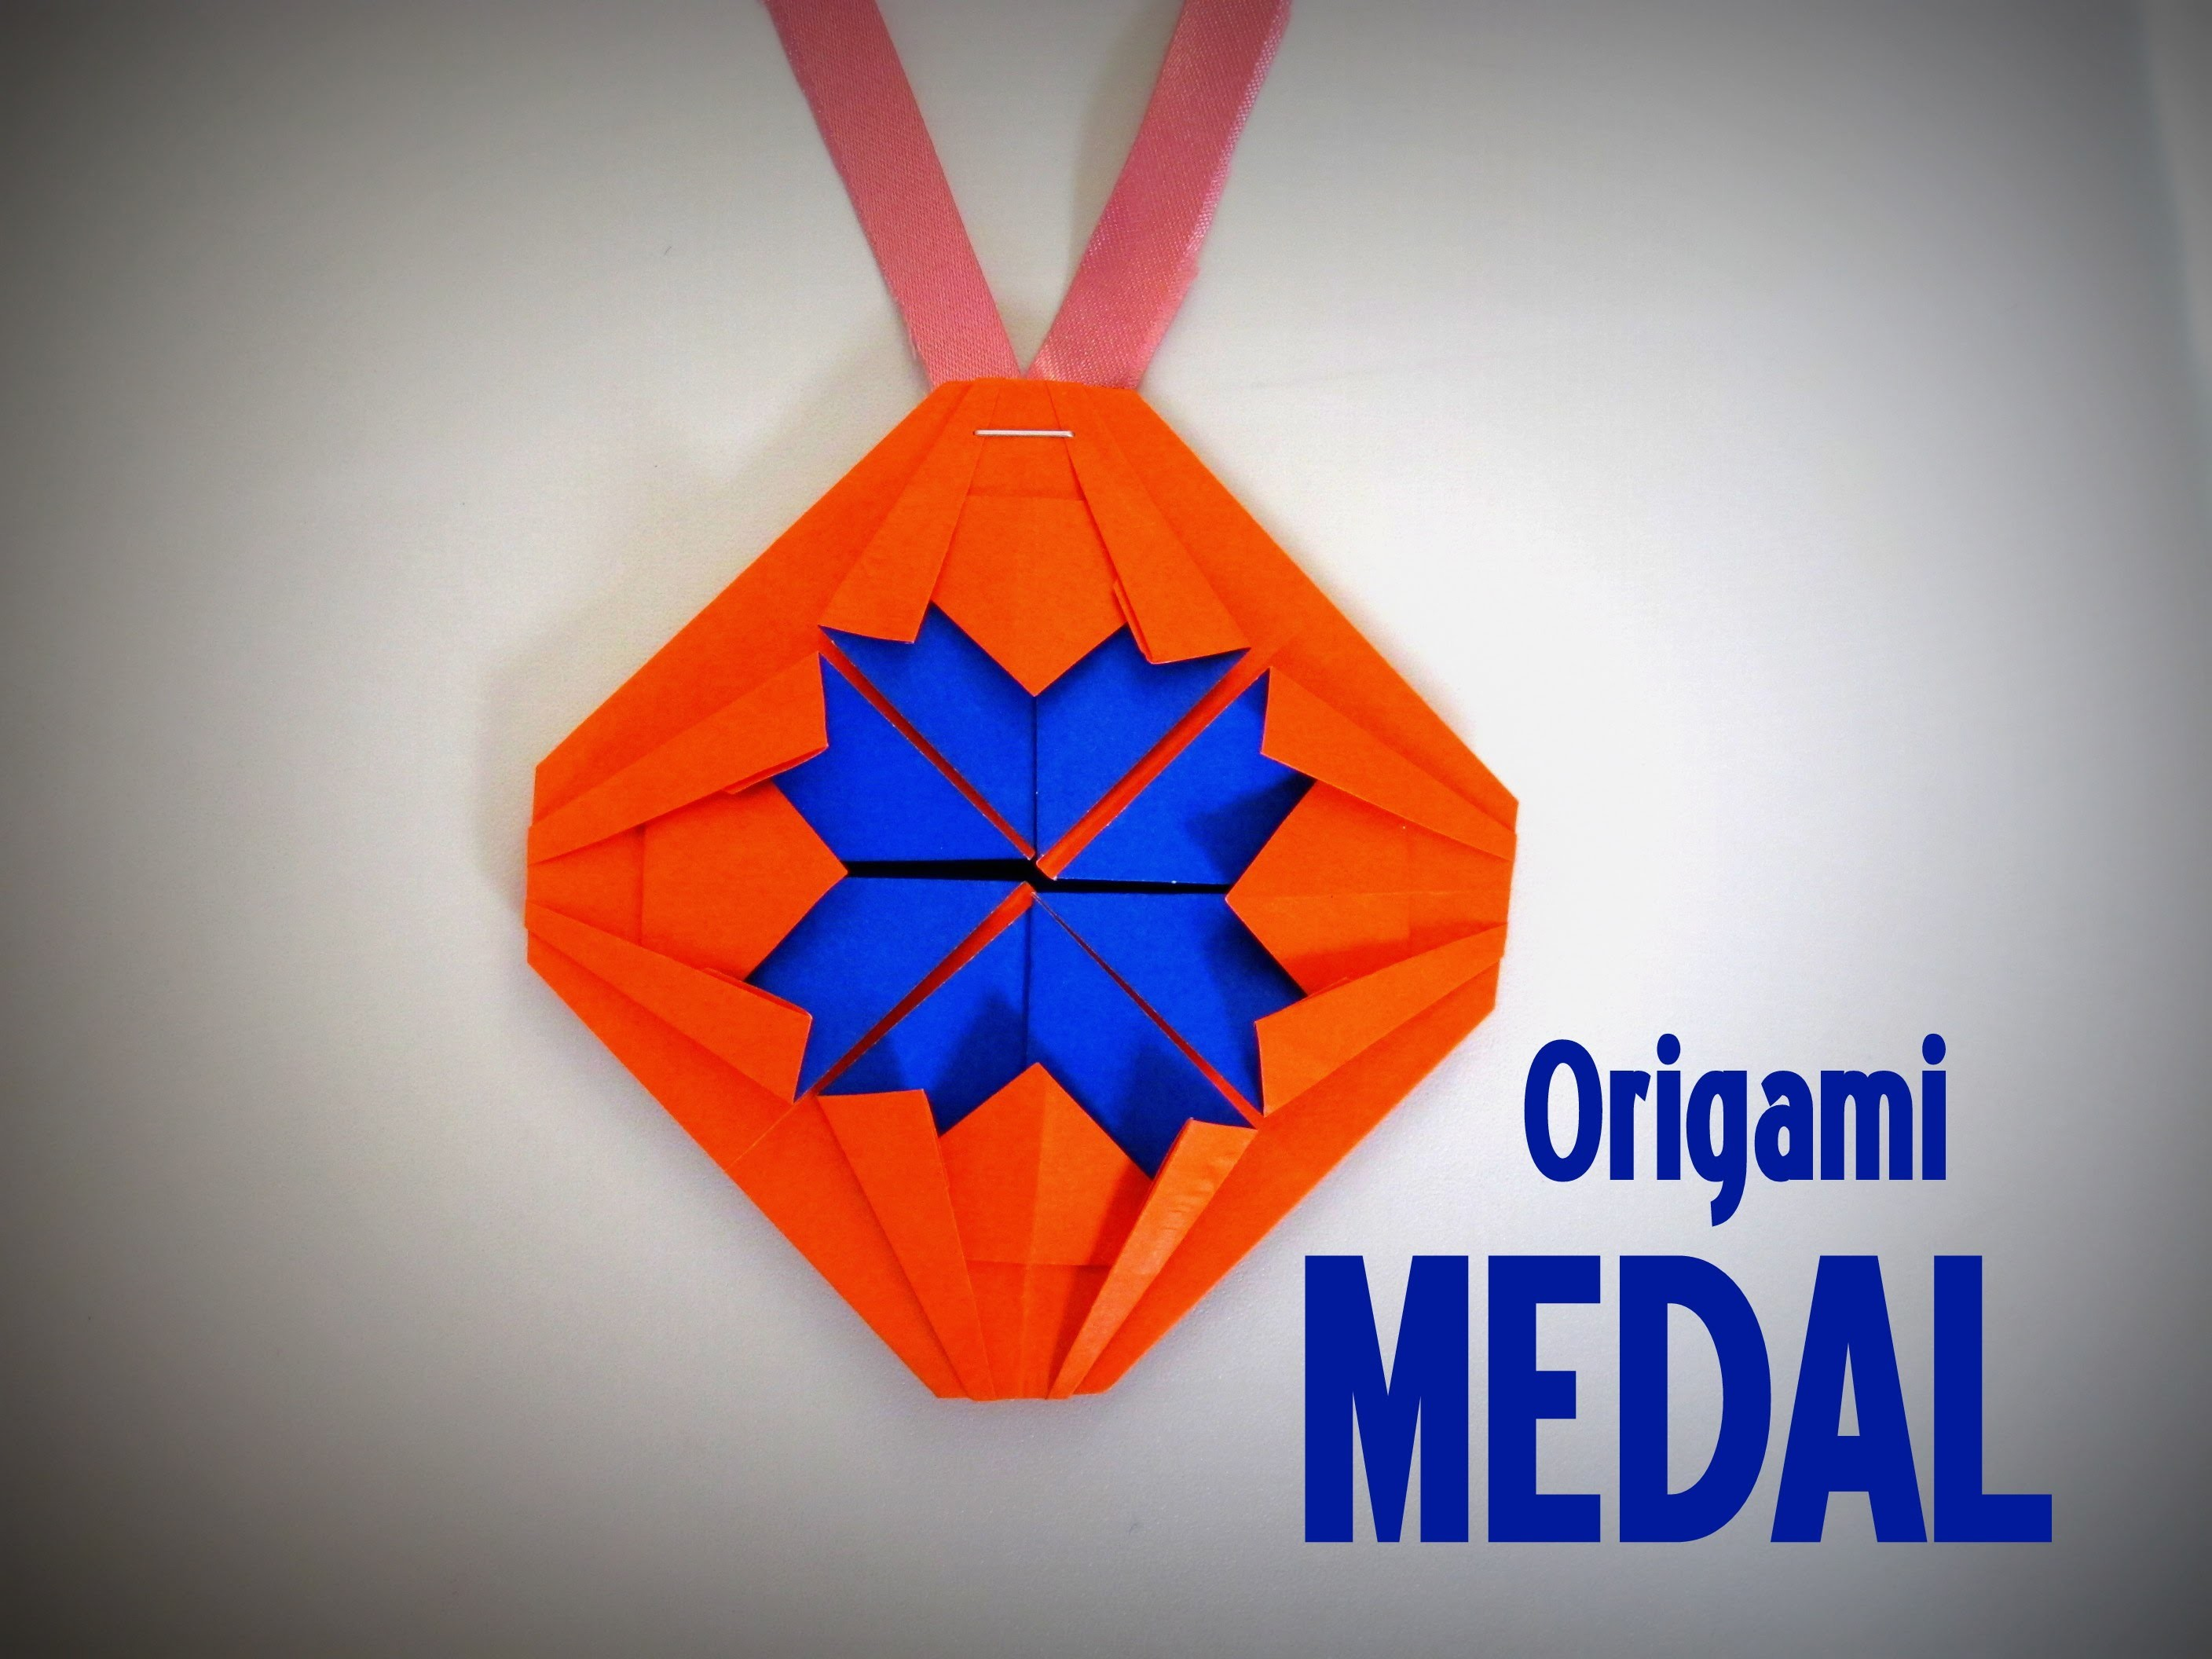 Origami - How to make a MEDAL